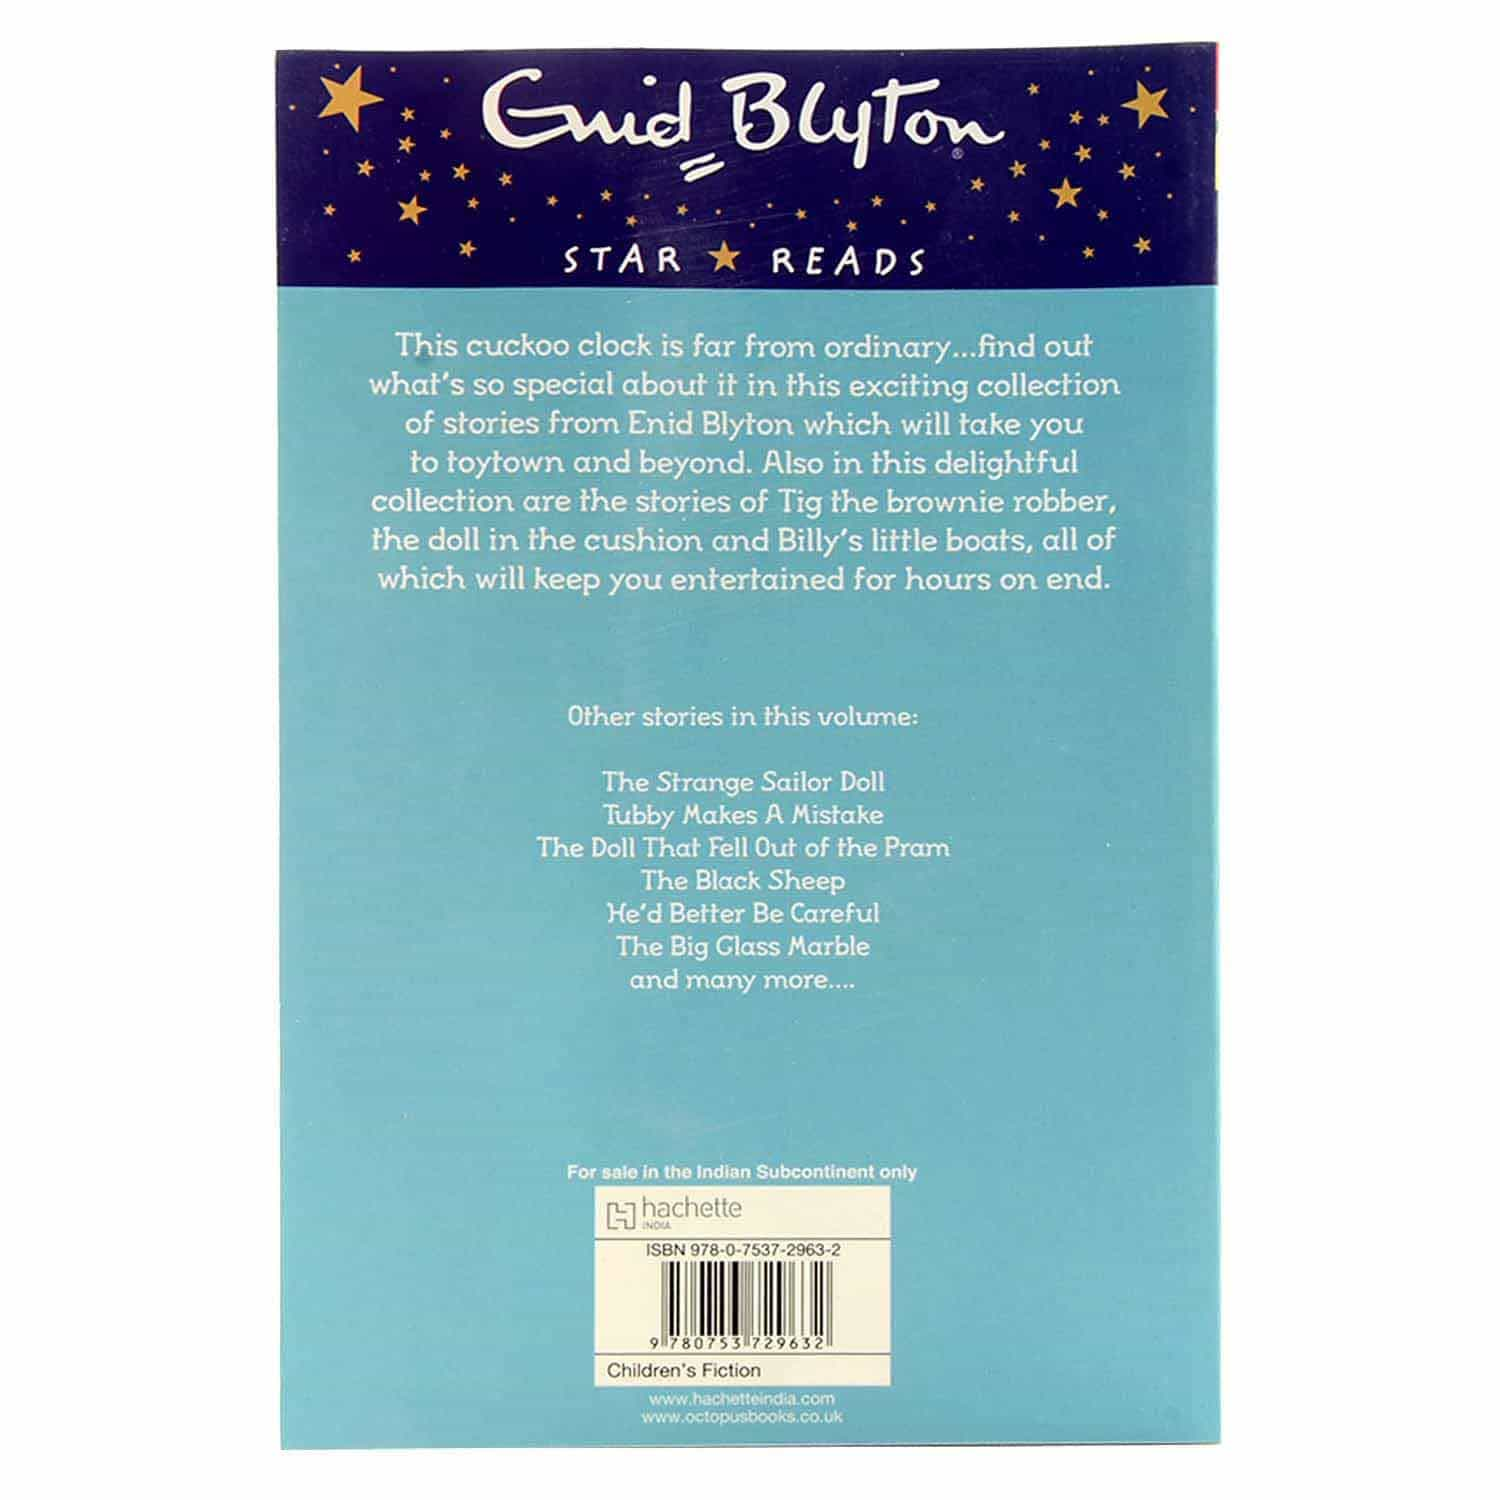 Enid Blyton - The Cuckoo in the Clock and Other Stories